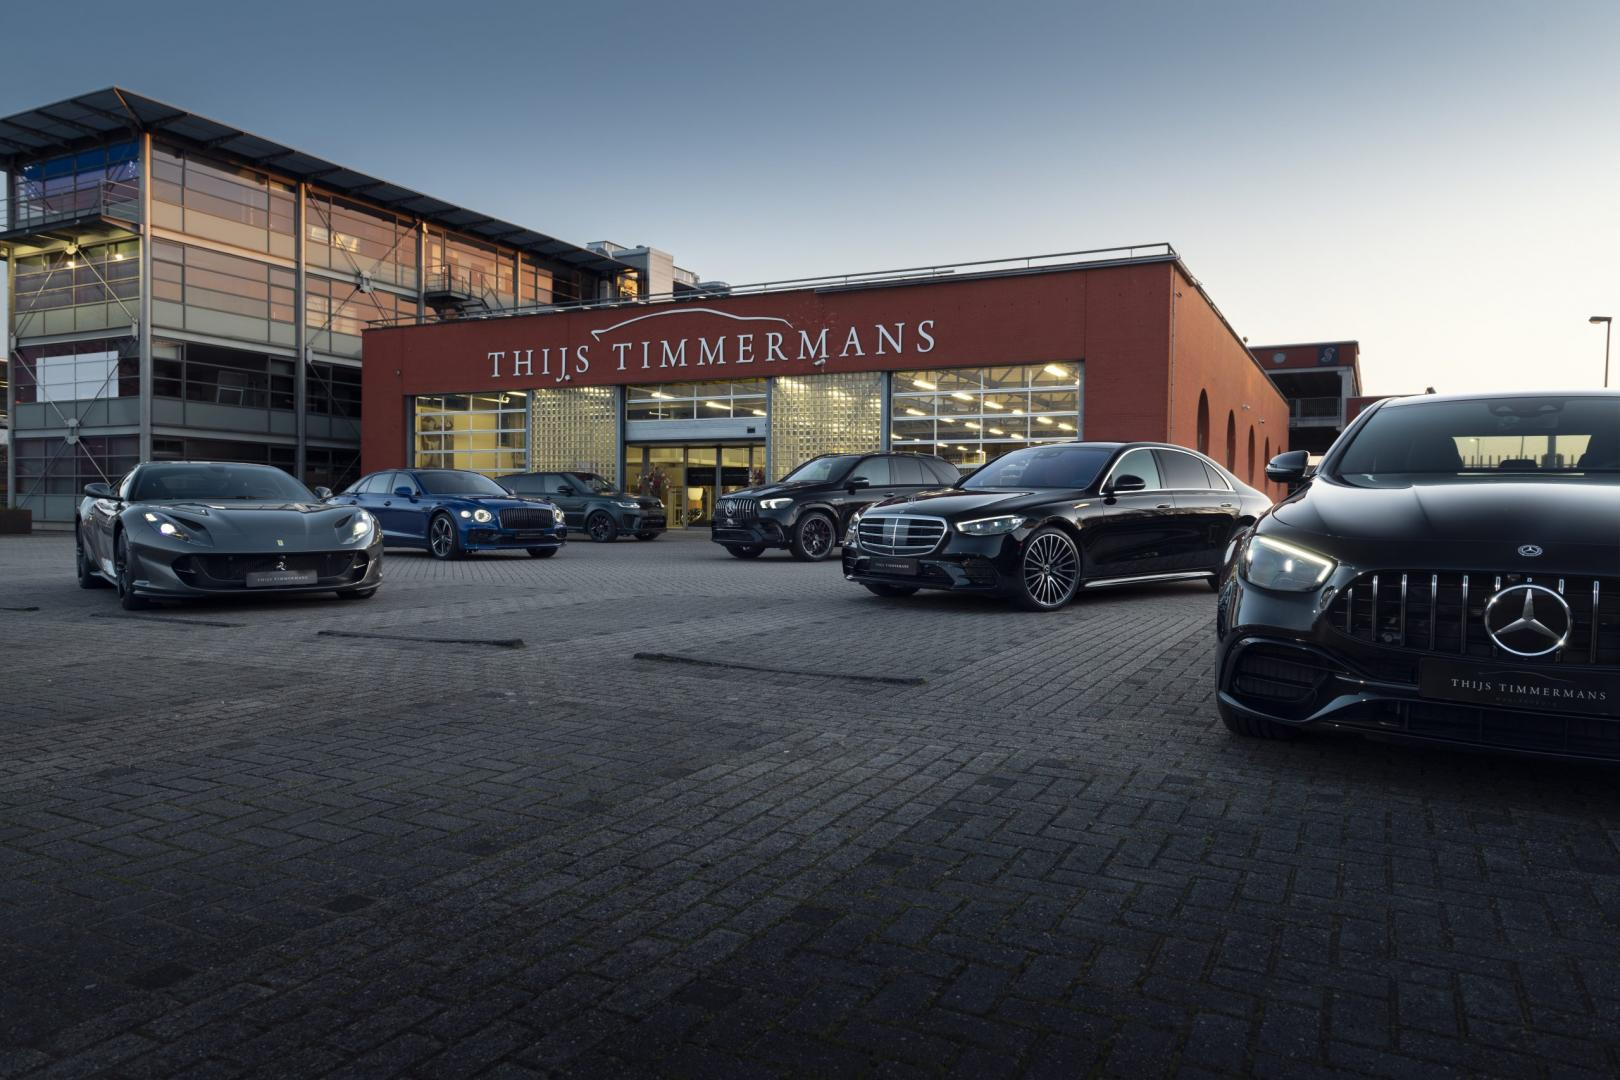 thijs timmermans advertorial april 2021